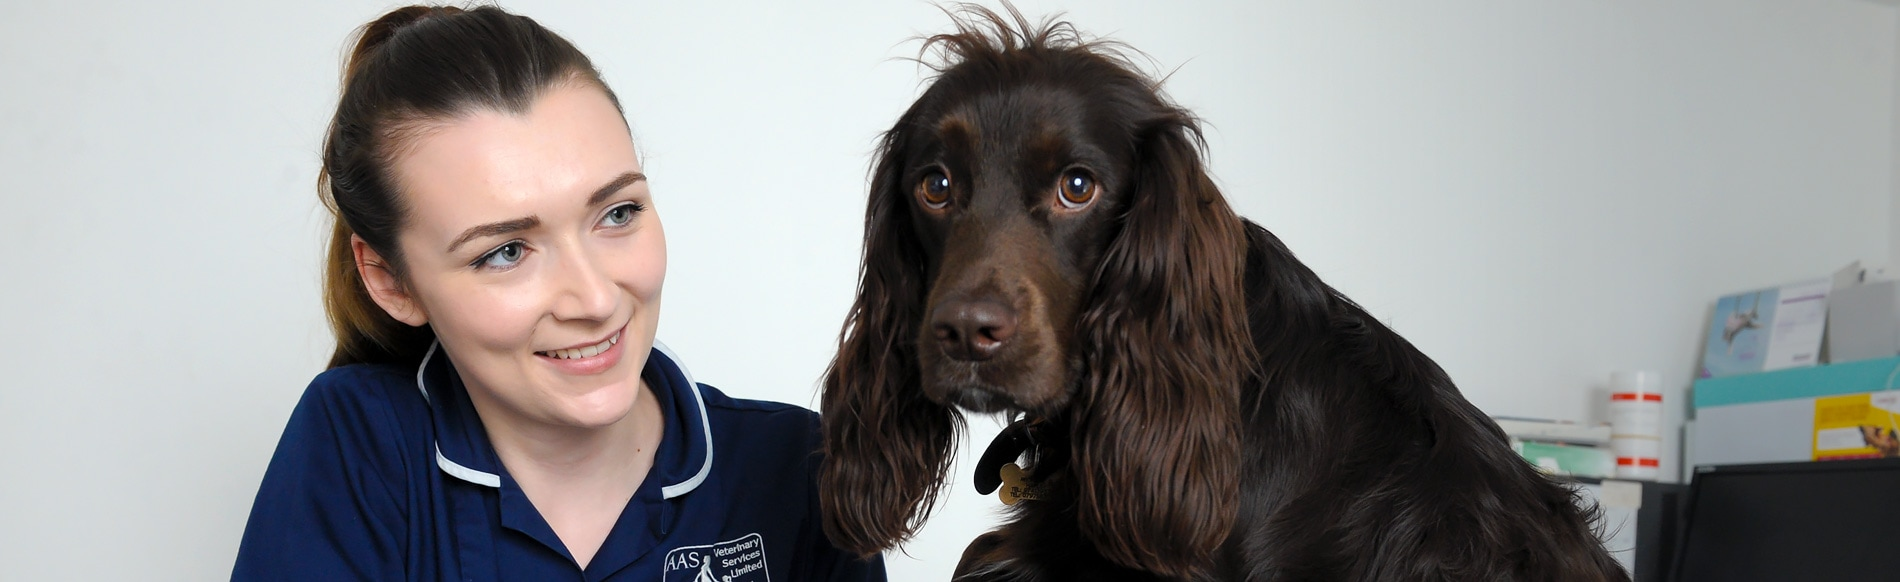 Vets in Gloucester | Vets in Abbeydale, Stroud, Quedgeley, Hucclecote